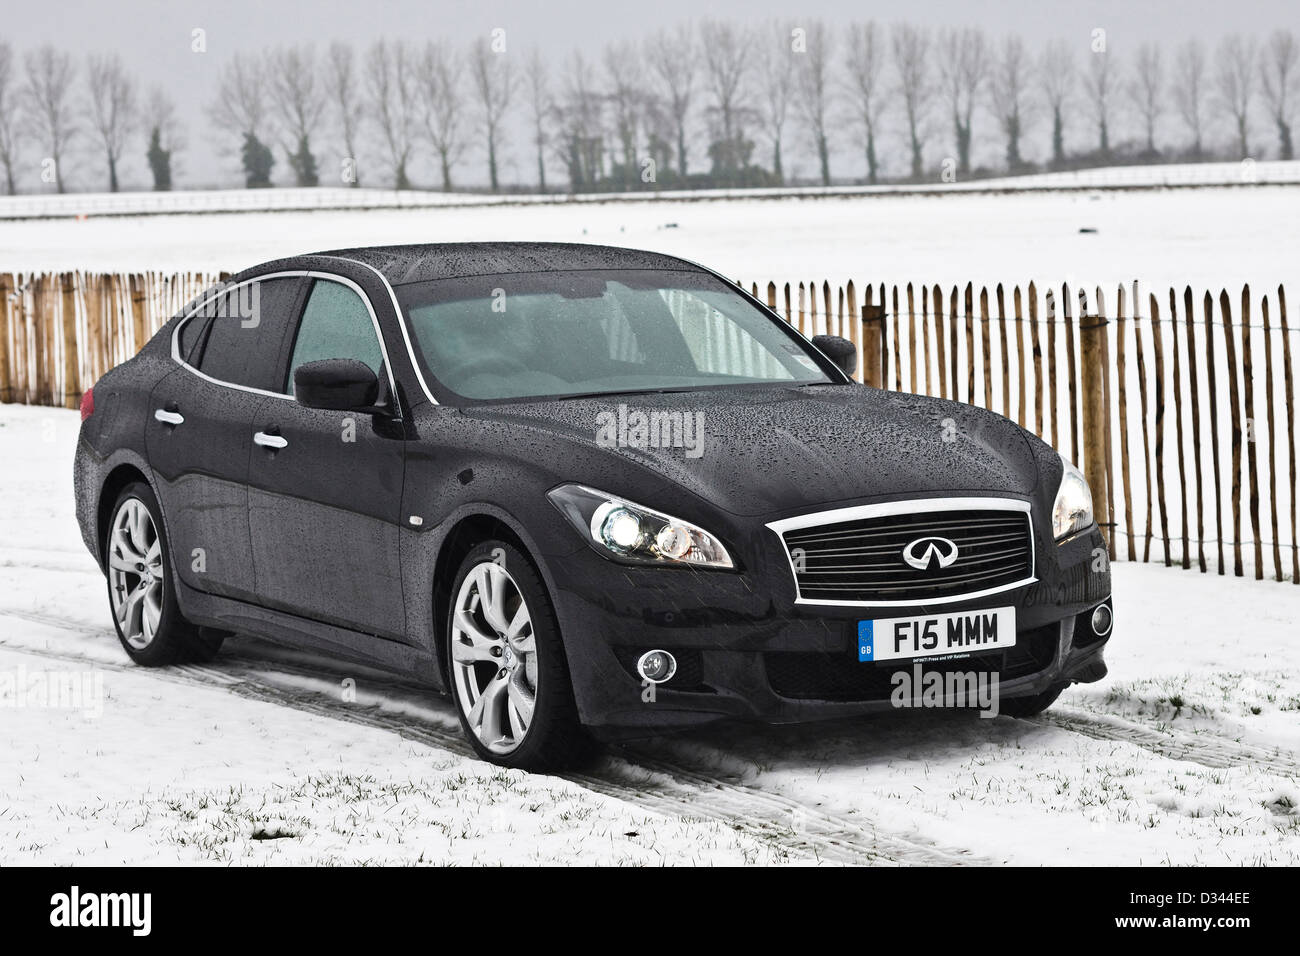 Infiniti M37 S in winter snow and bad weather, 20 12 10 - Stock Image